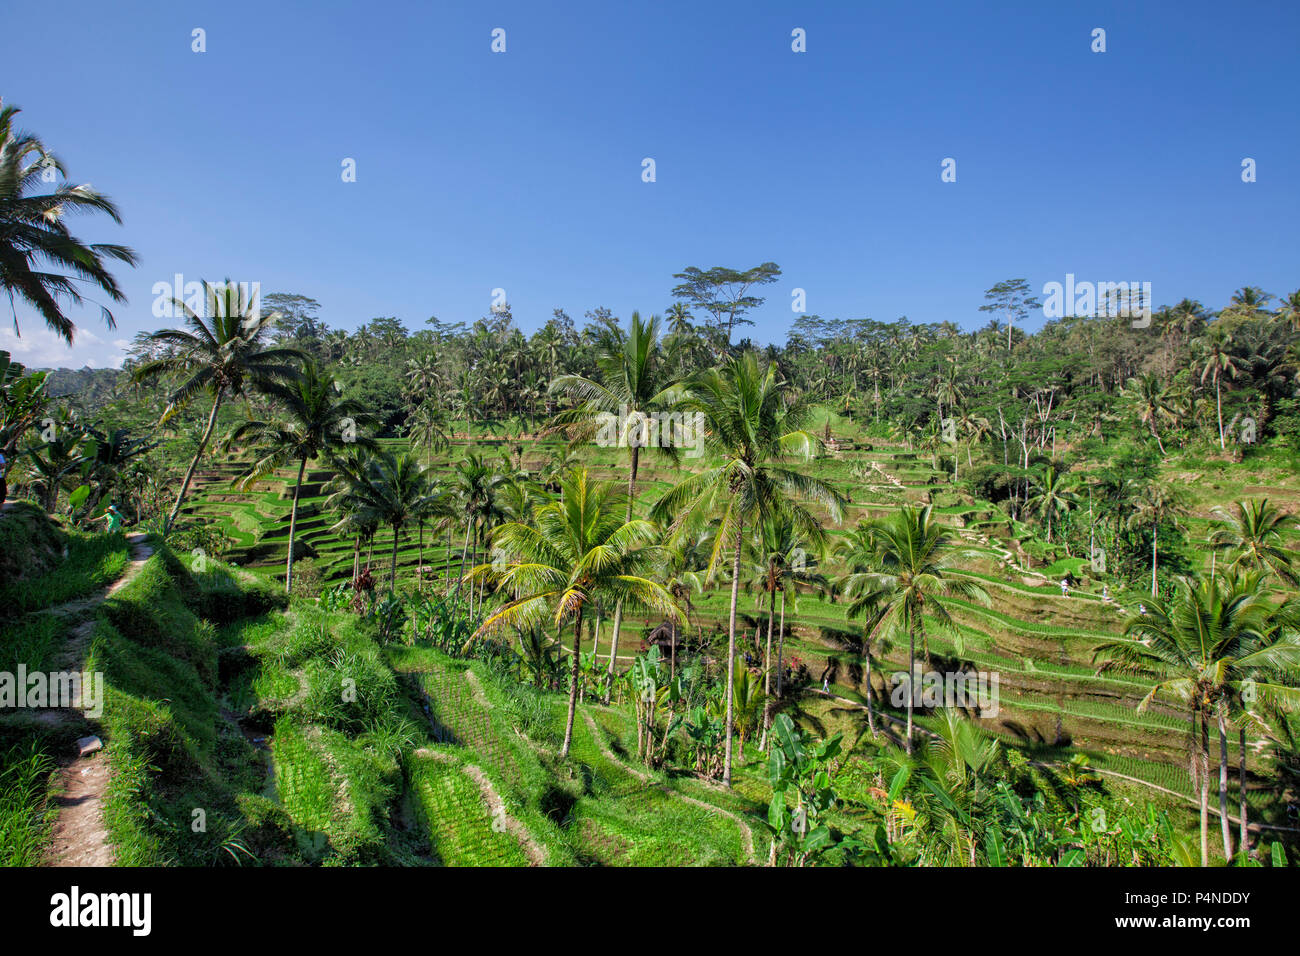 Tegallalang Rice Terraces in Ubud is famous for its beautiful scenes of rice paddies involving the subak (traditional Balinese cooperative irrigation  - Stock Image